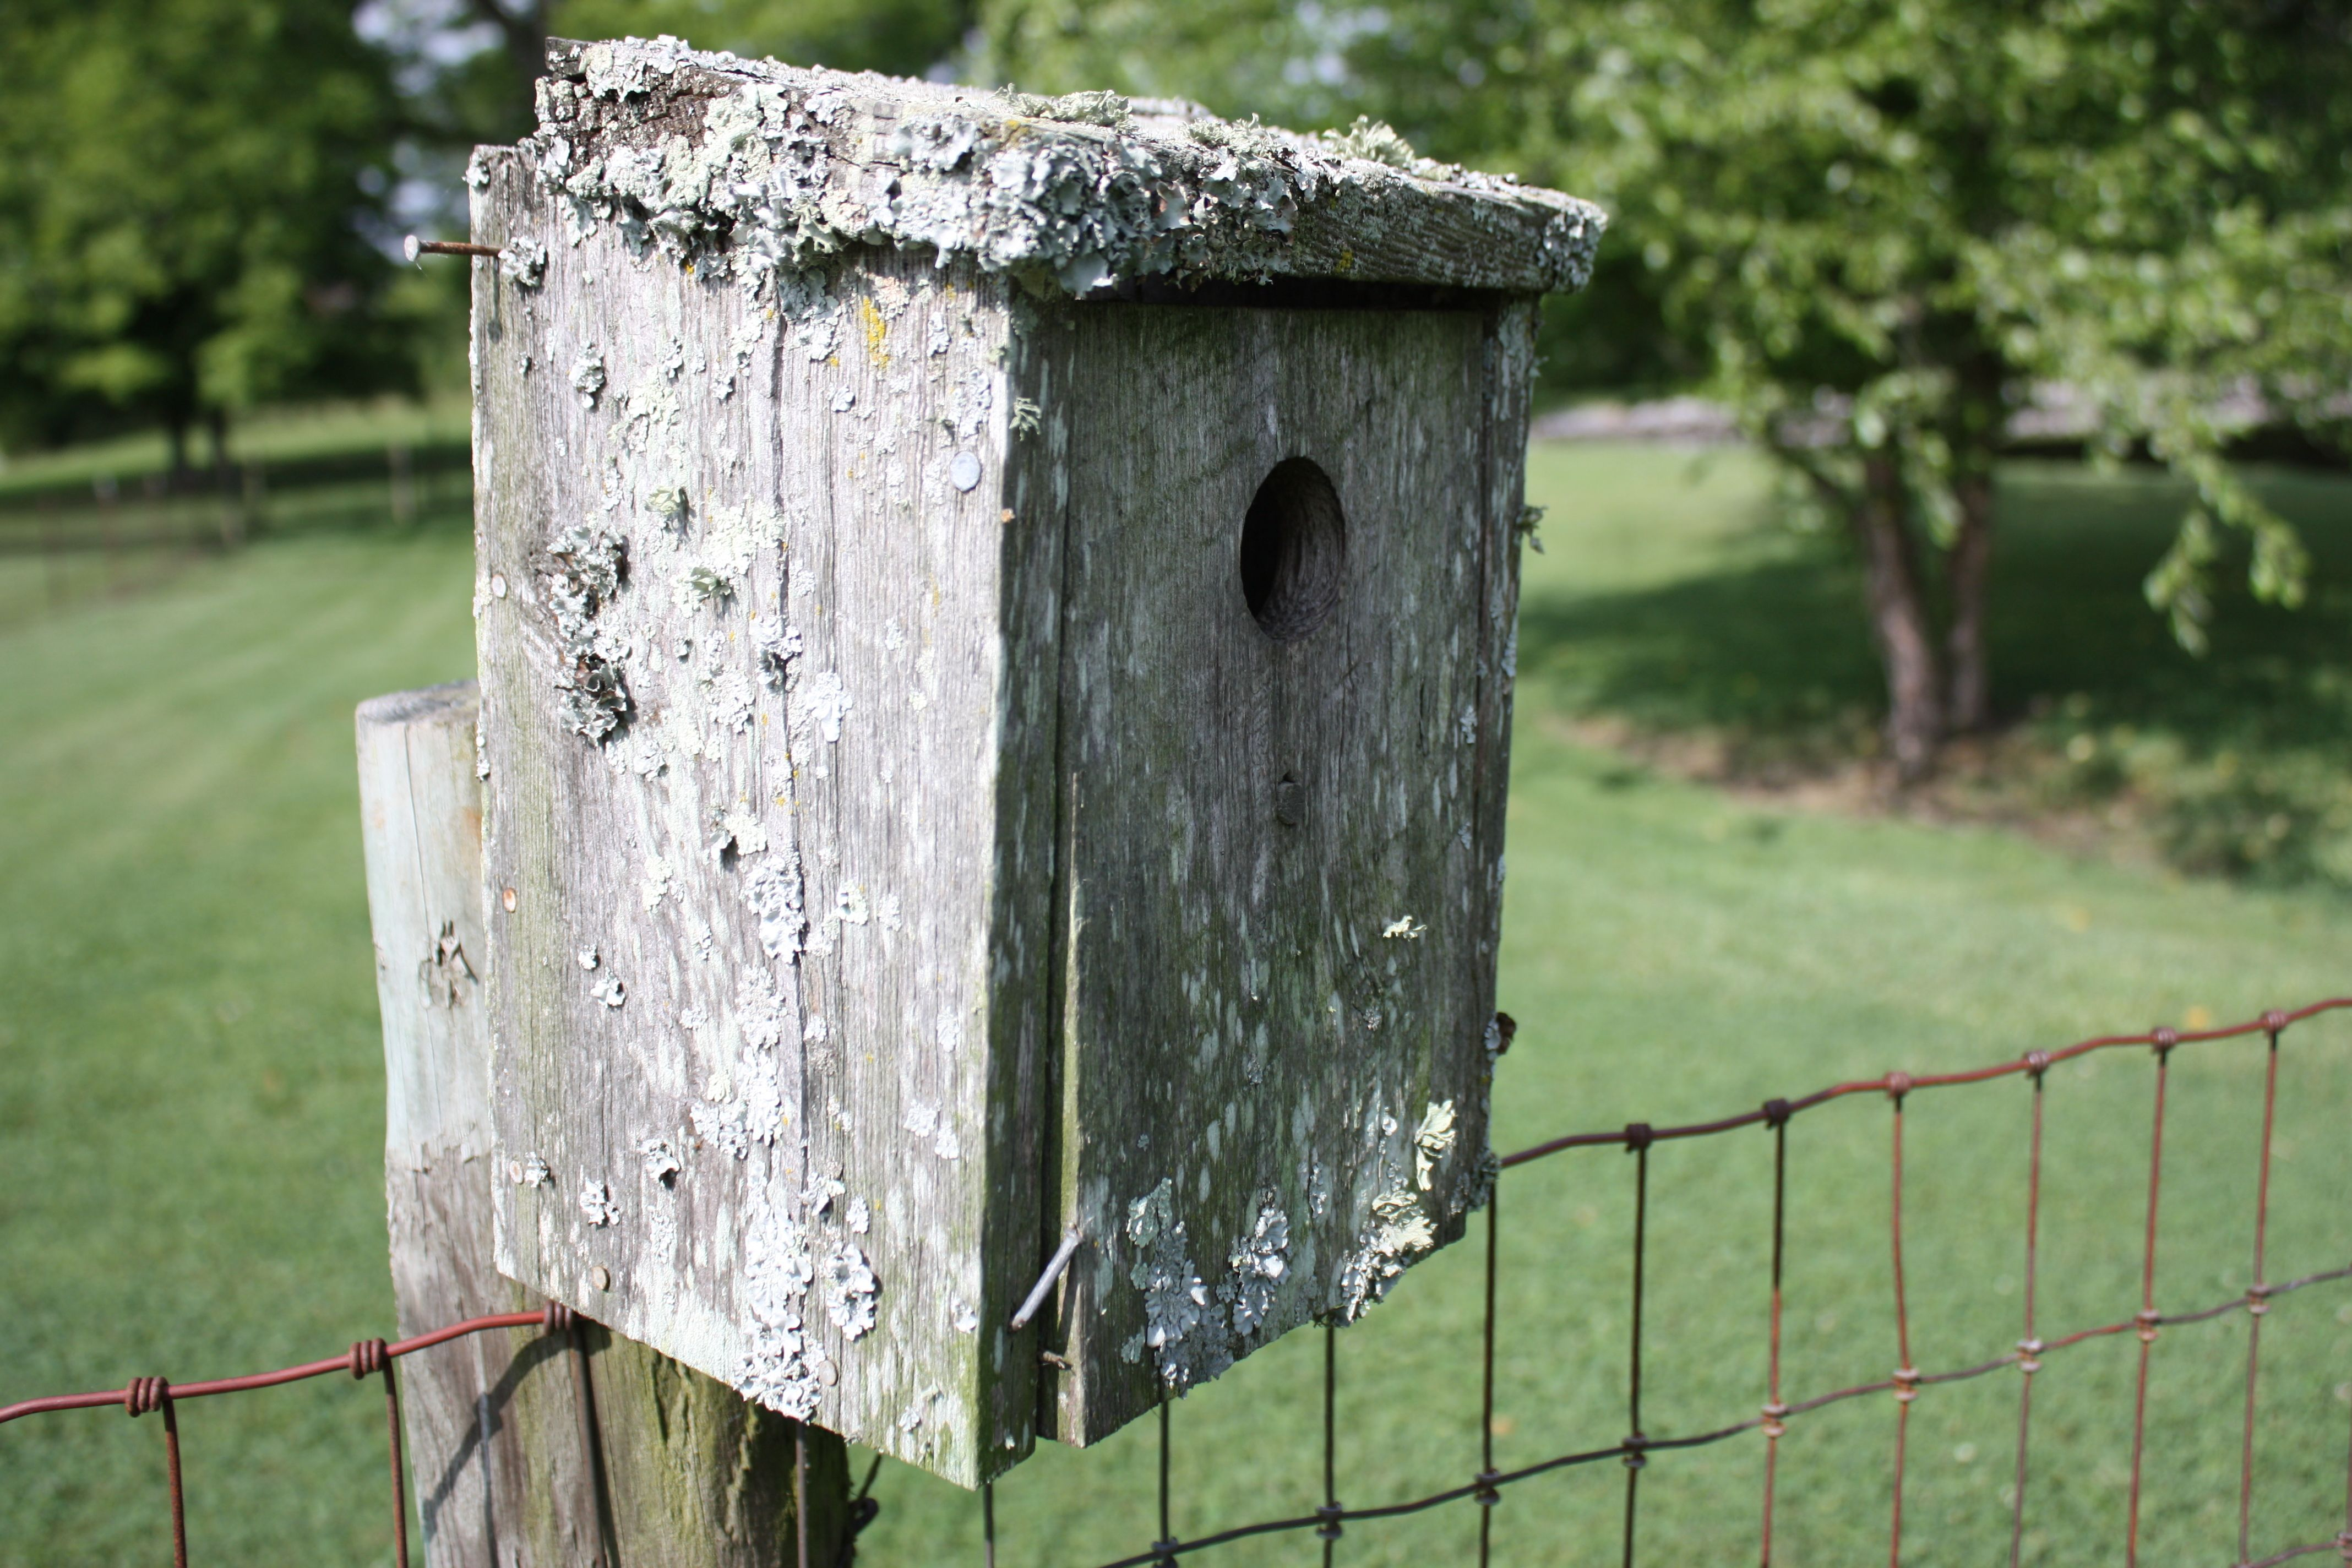 There is an old, lichen-covered bluebird house on our fencepost.  It is well-loved and has been home to many bluebird families over the years